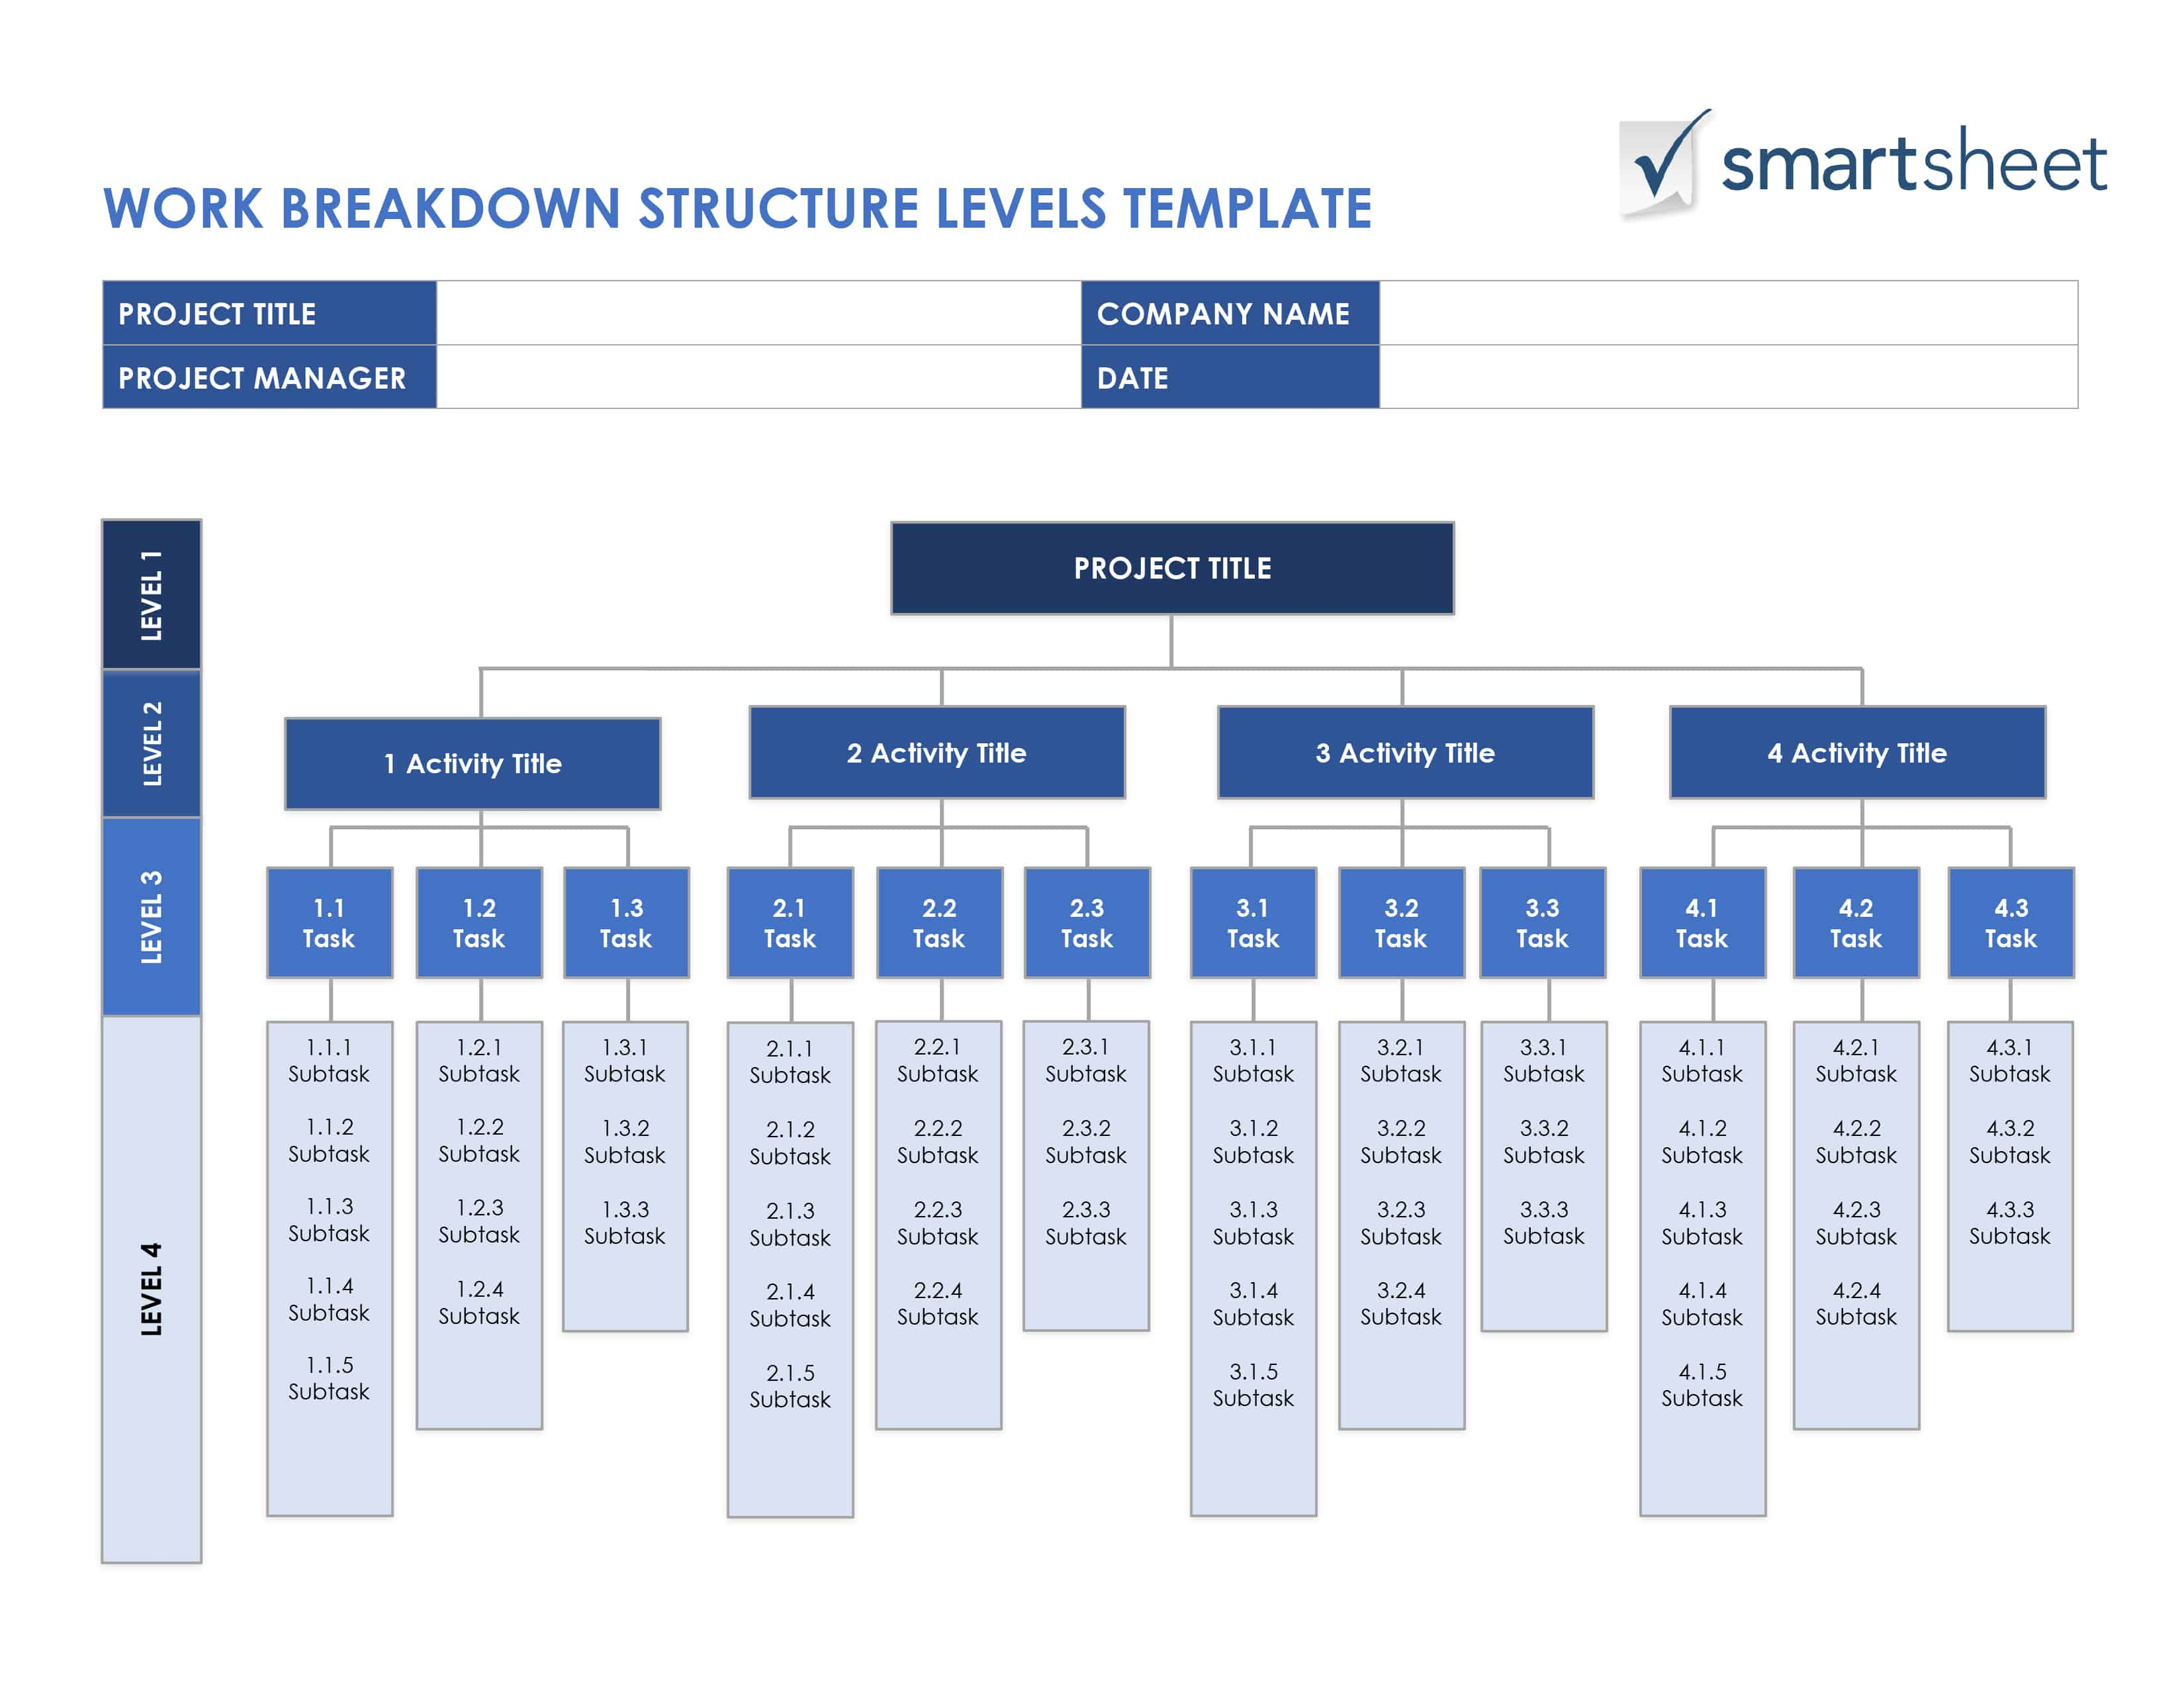 product breakdown structure excel template - free work breakdown structure templatessmartsheet